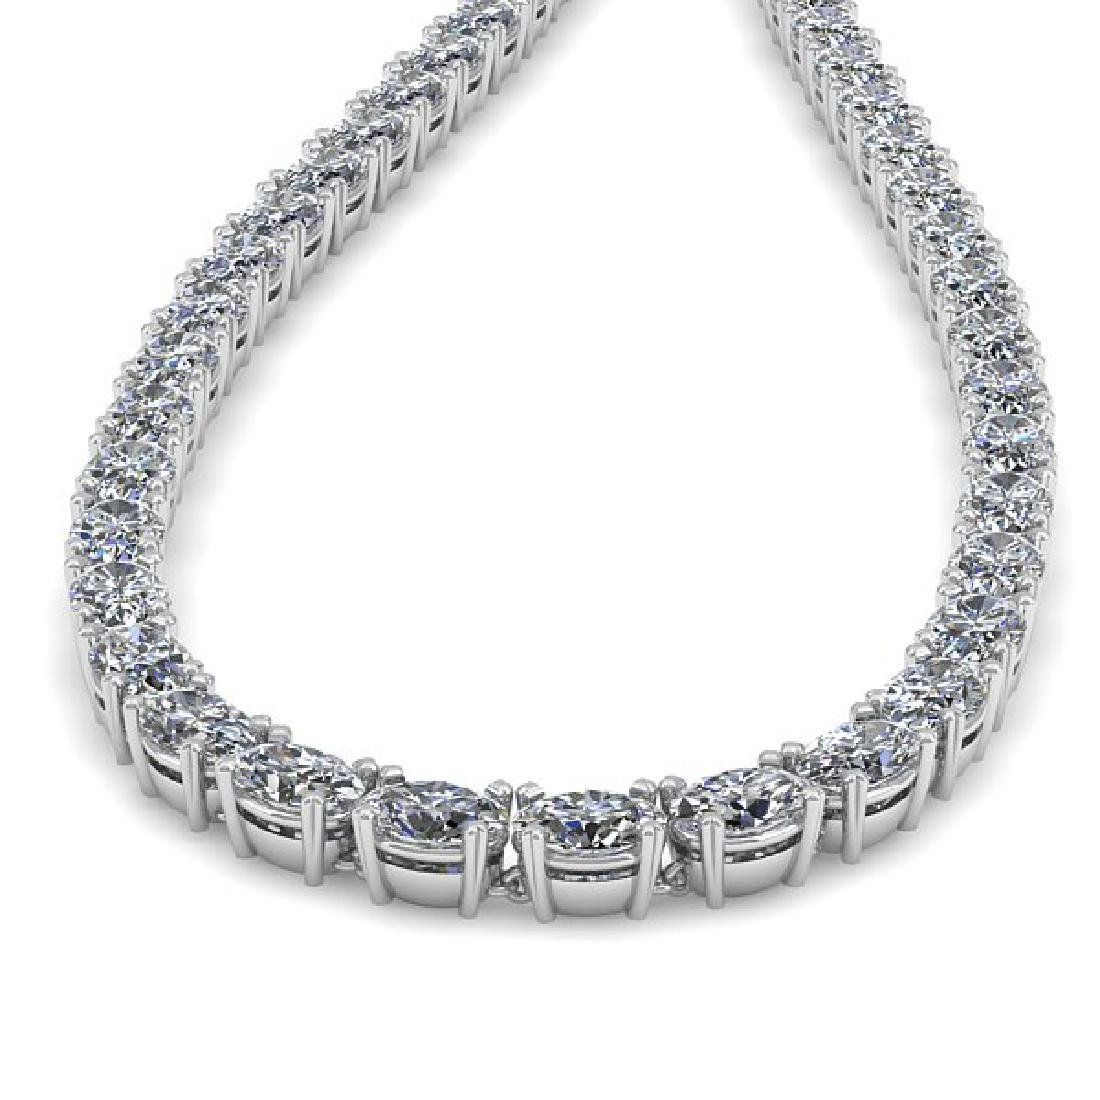 30 CTW Oval Cut Certified SI Diamond Necklace 14K White